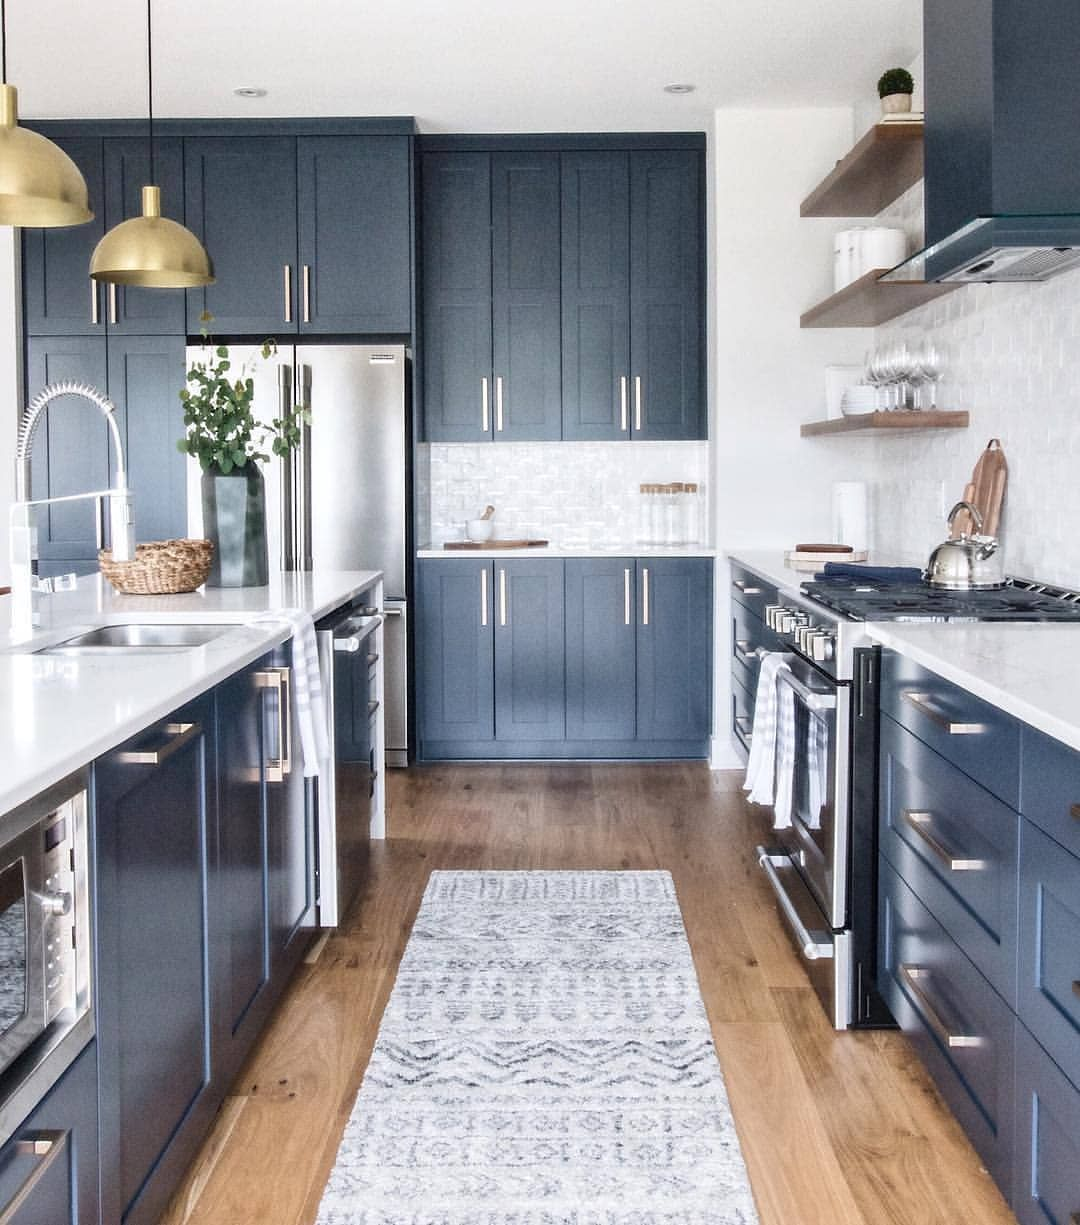 Cabinets Up To The Ceiling Make The Space Look Larger And More Storage Is Achieved Pretty Color For The Cabinets Kitchen Addition Kitchen Kitchen Cabinets